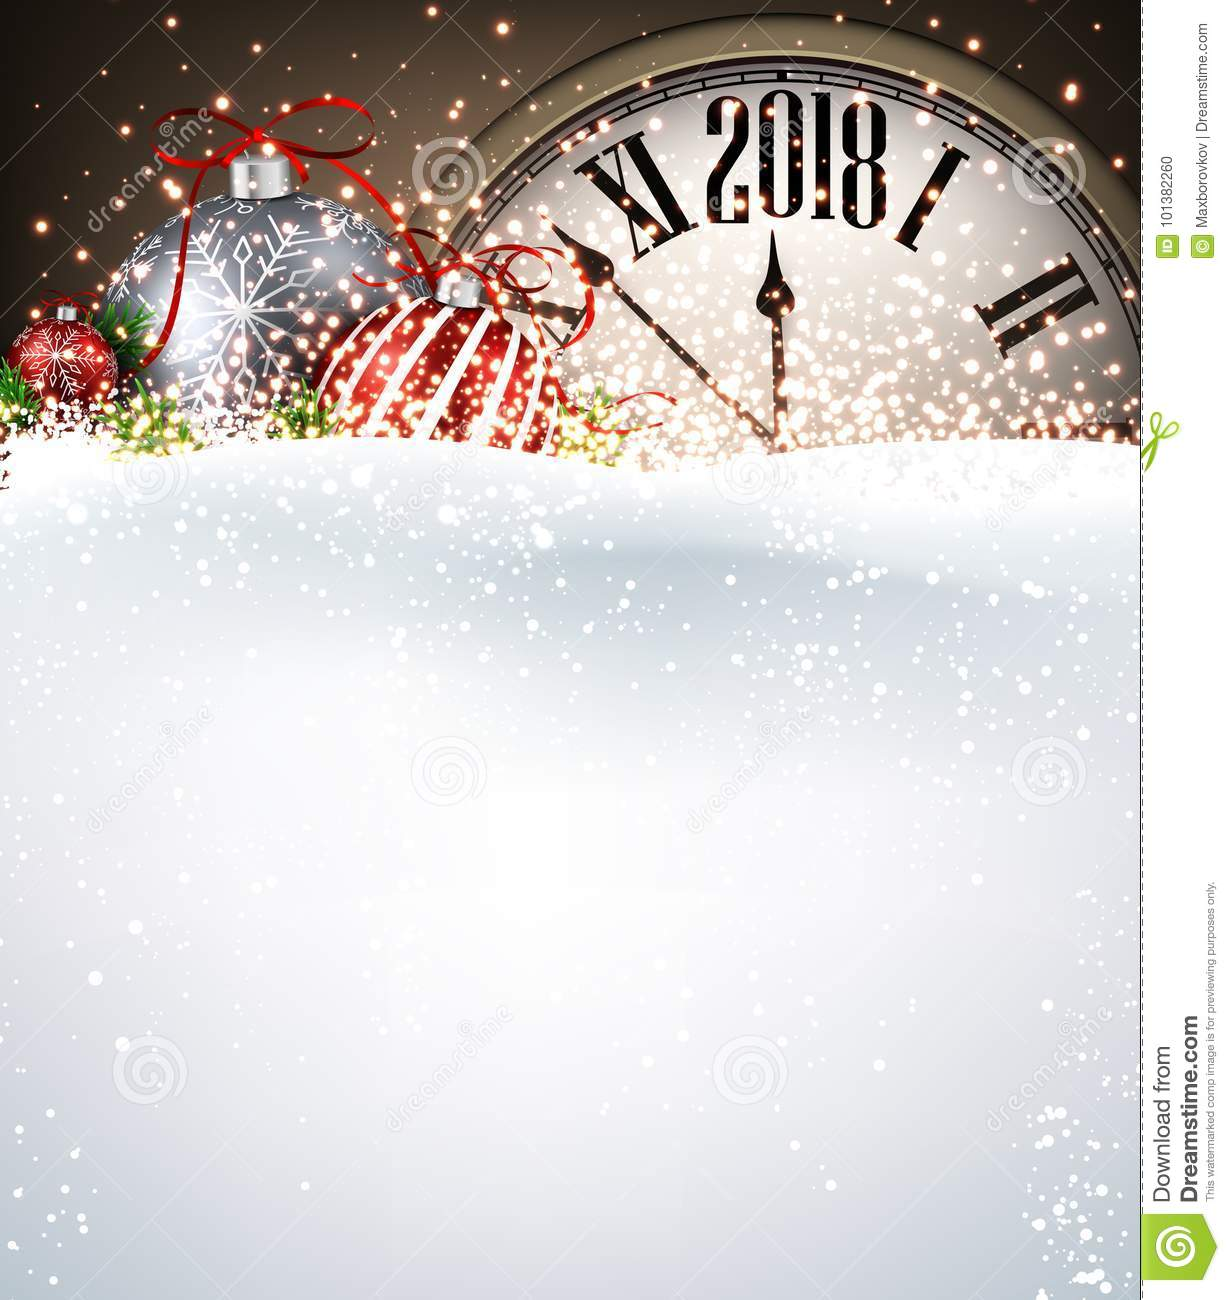 2018 New Year Background With Clock. Stock Vector - Illustration of ...